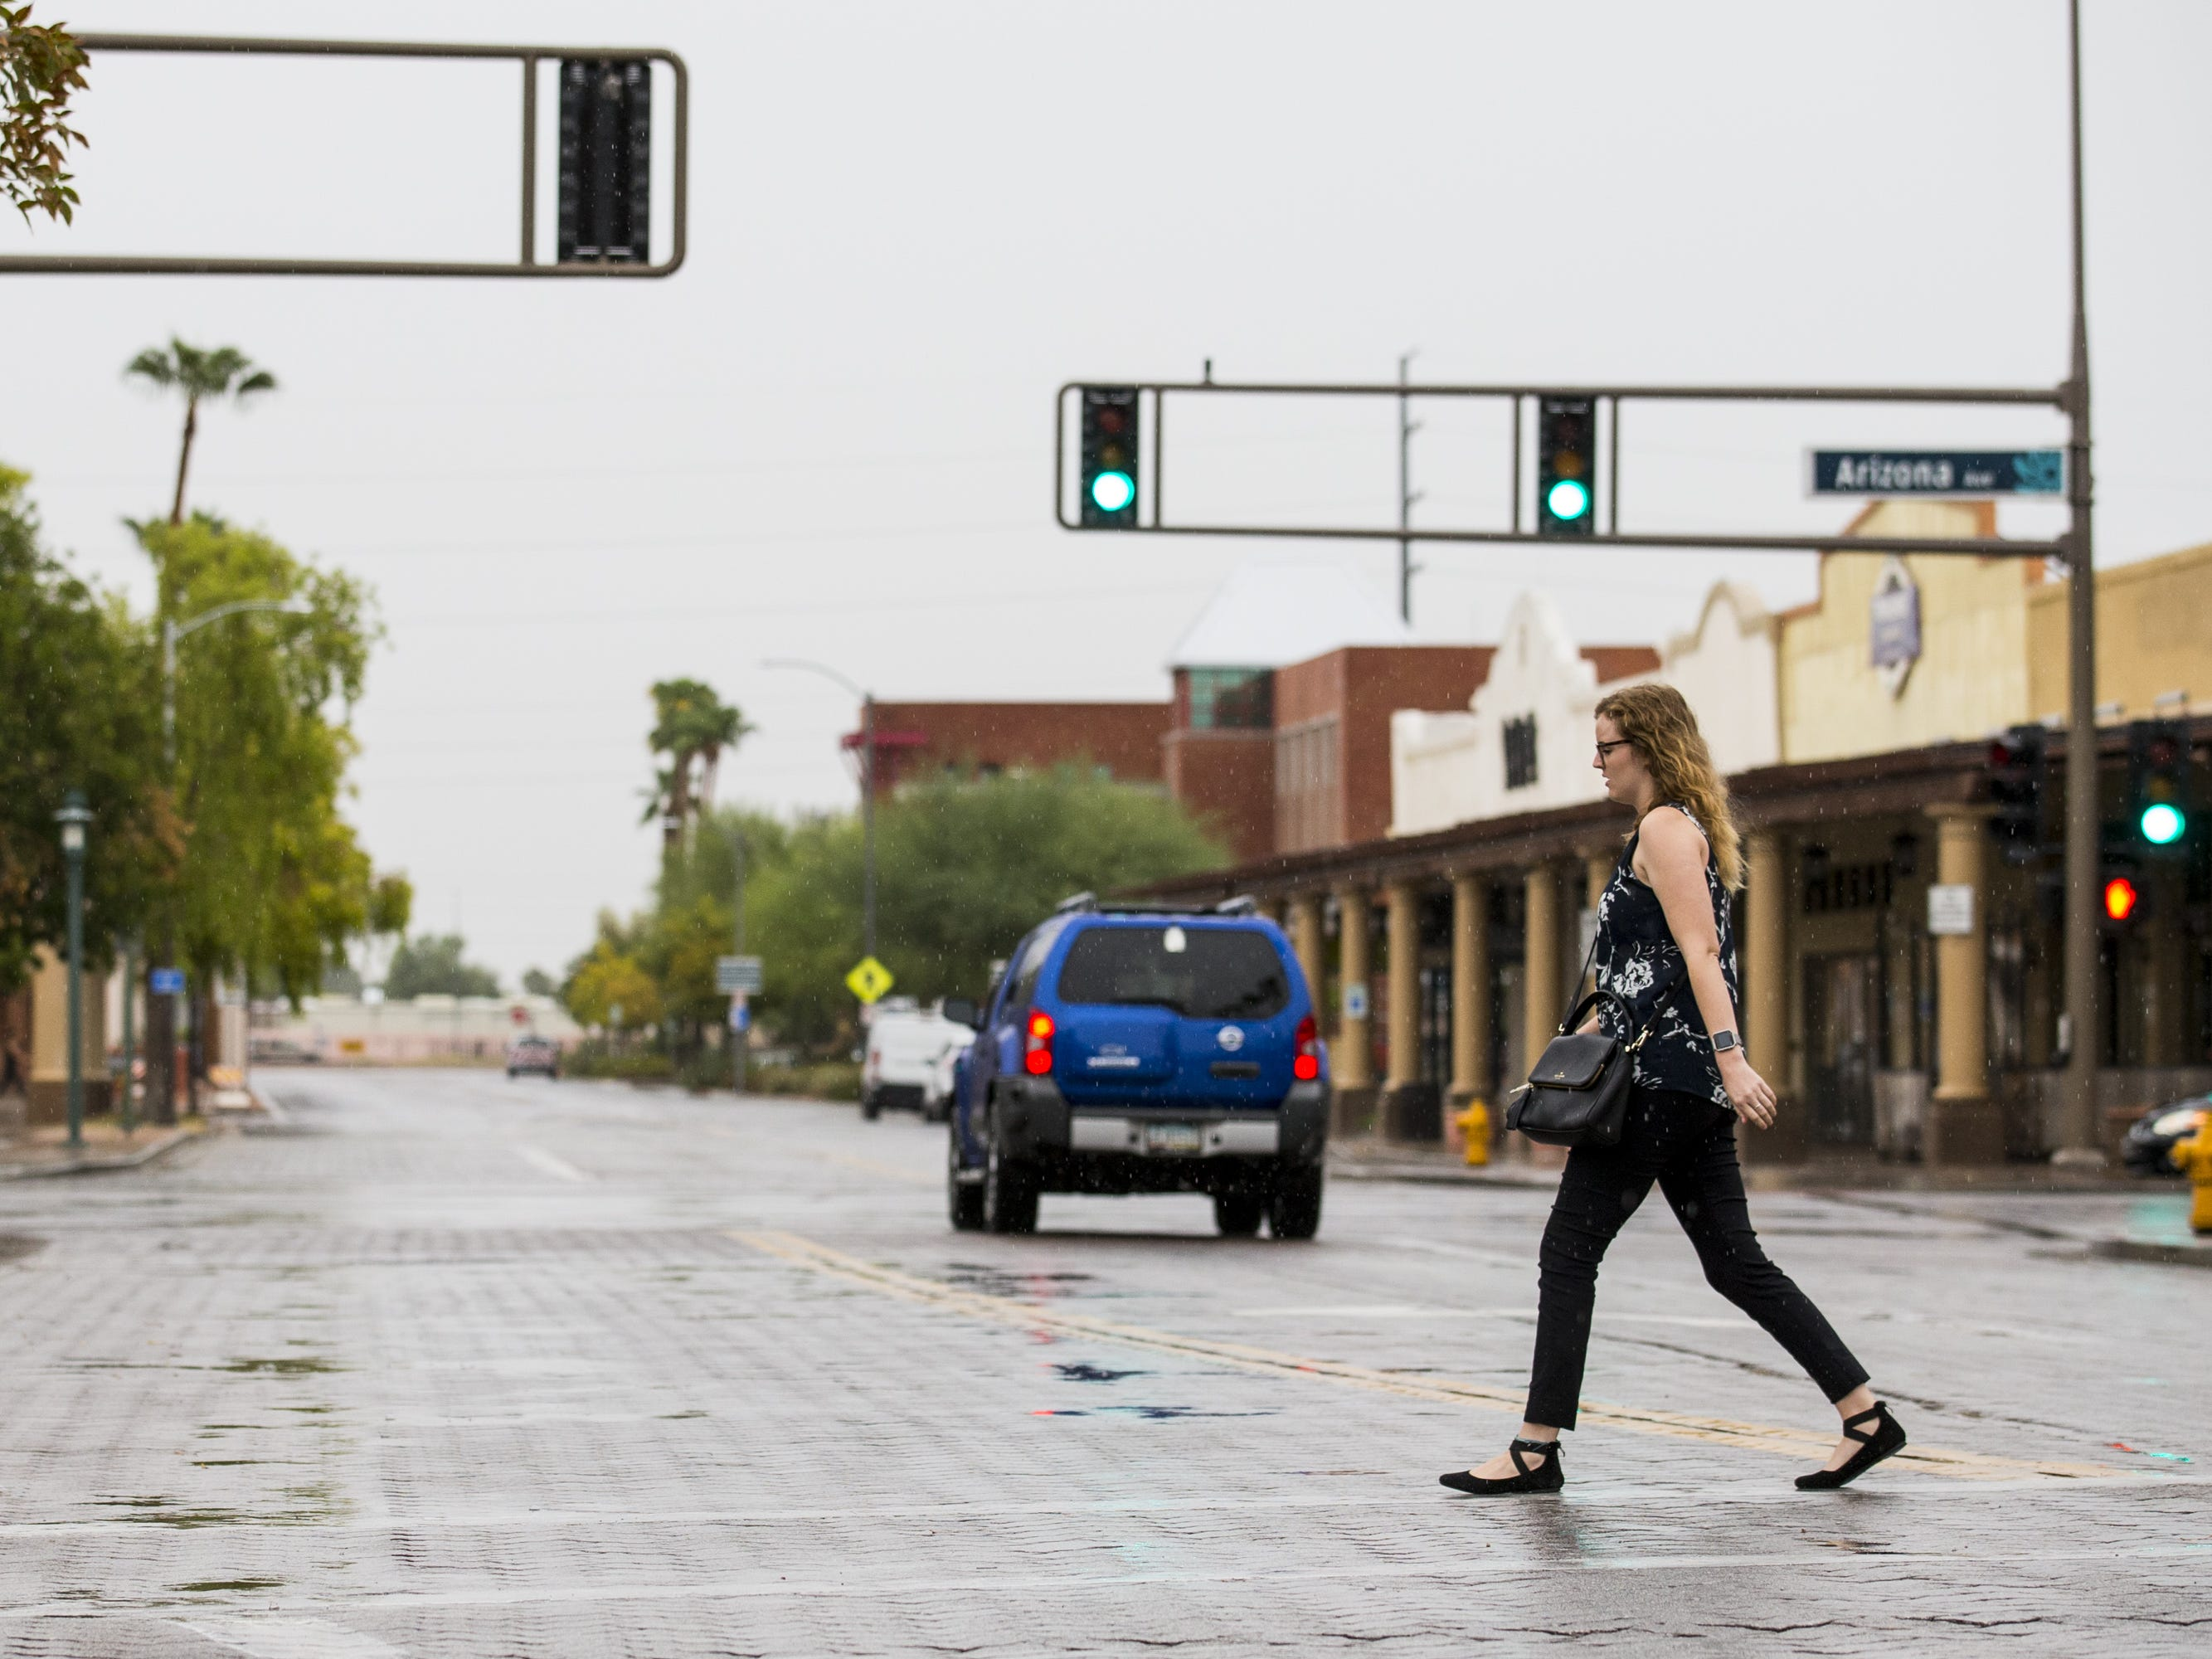 A woman walks across the street in the rain on Sept. 19, 2018, in Chandler.